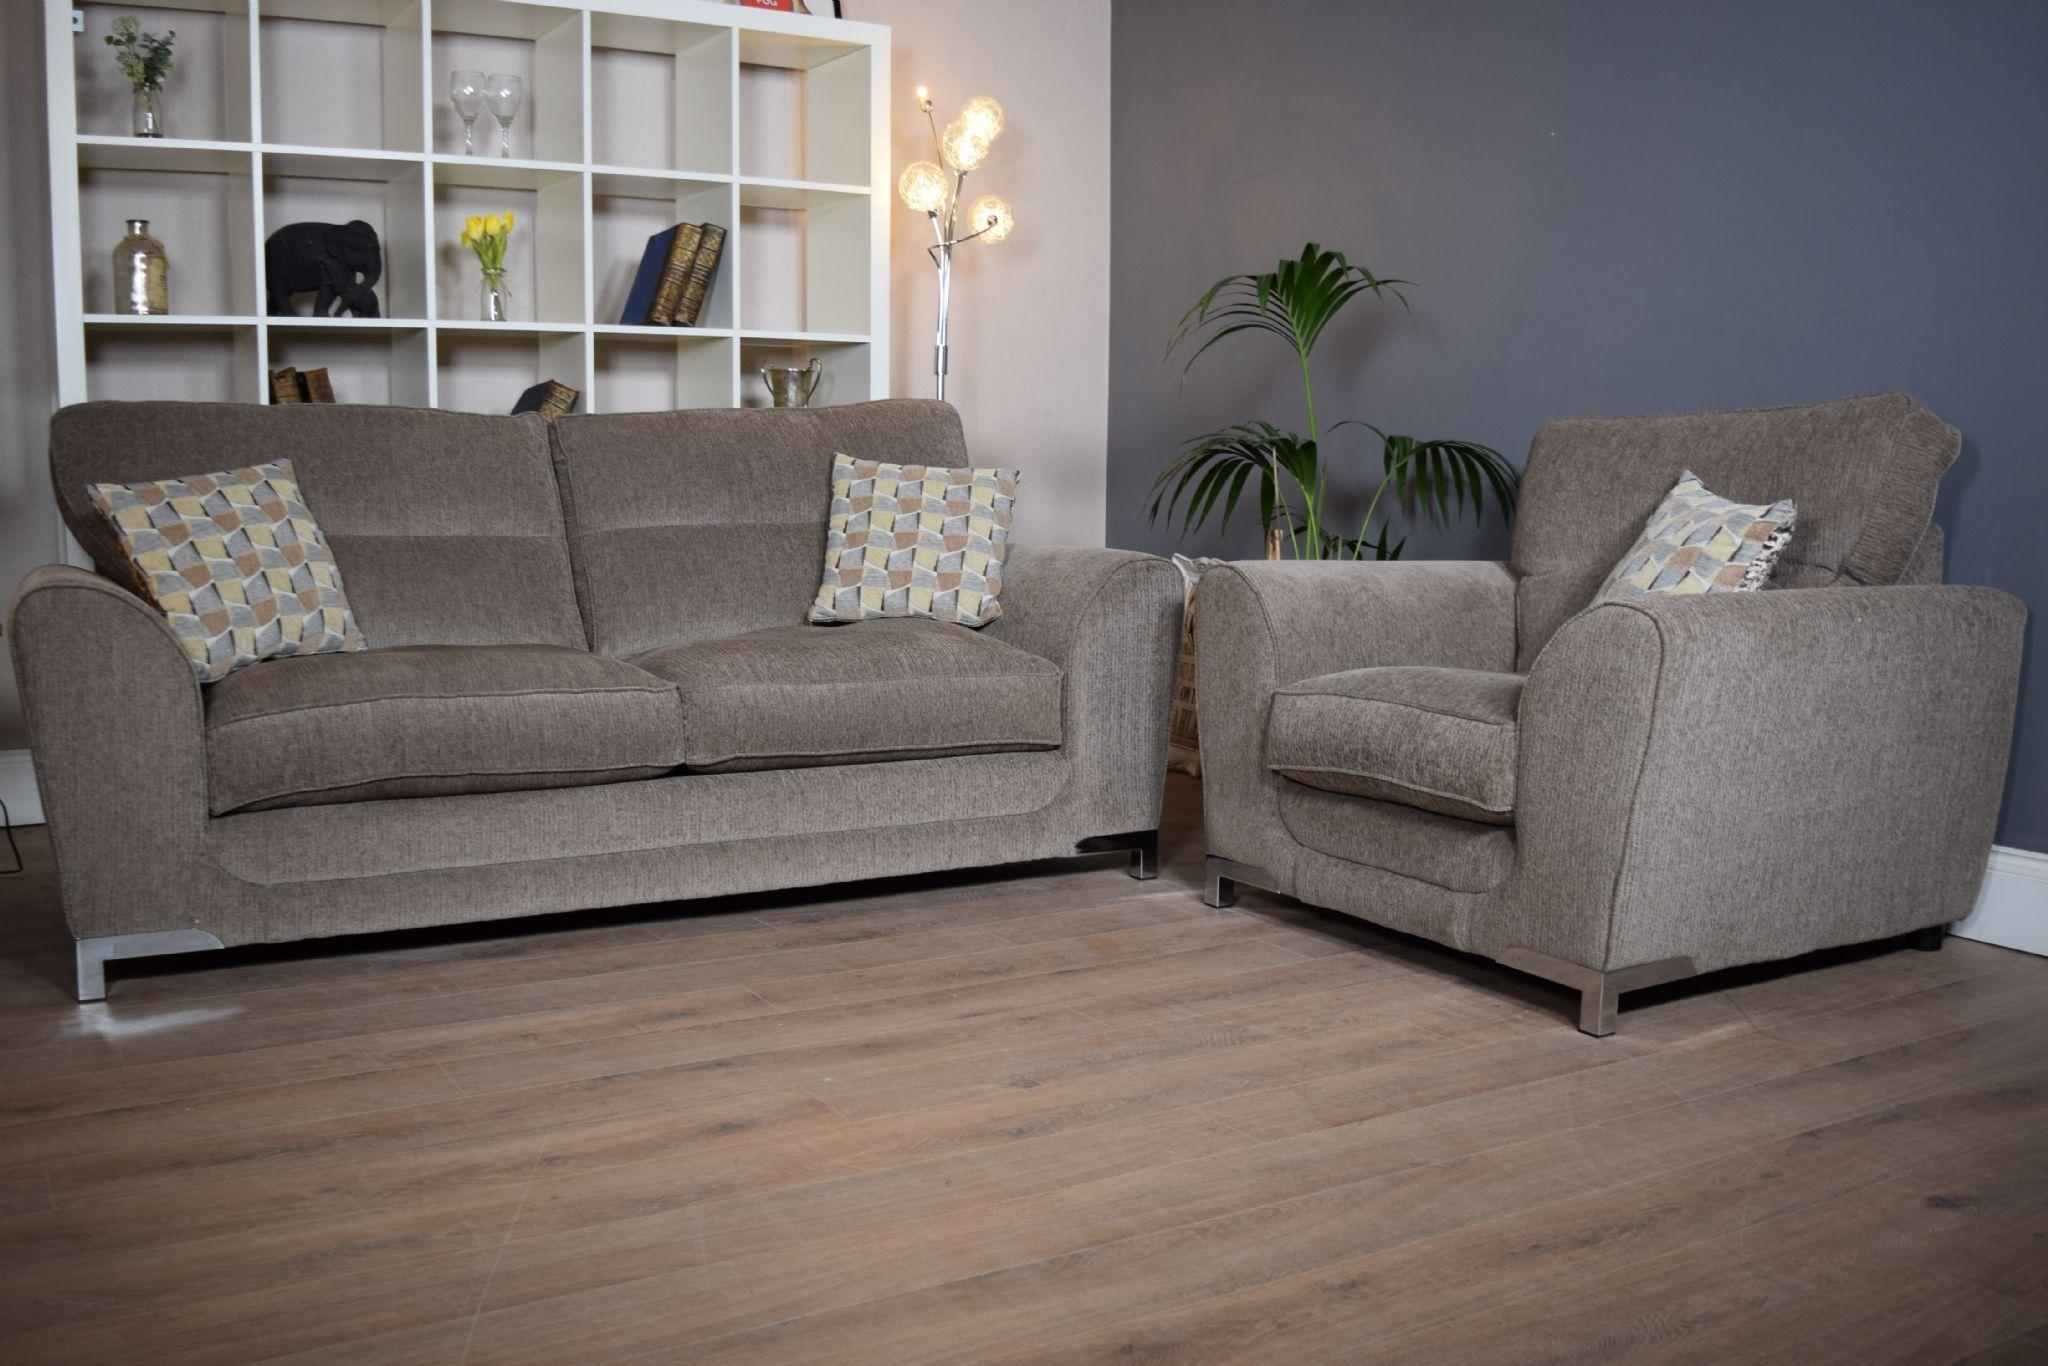 Set Nikki 3 Seater Sofa & Cuddle Chair Suite Set – Mocha Grey Throughout 3 Seater Sofa And Cuddle Chairs (Image 16 of 20)